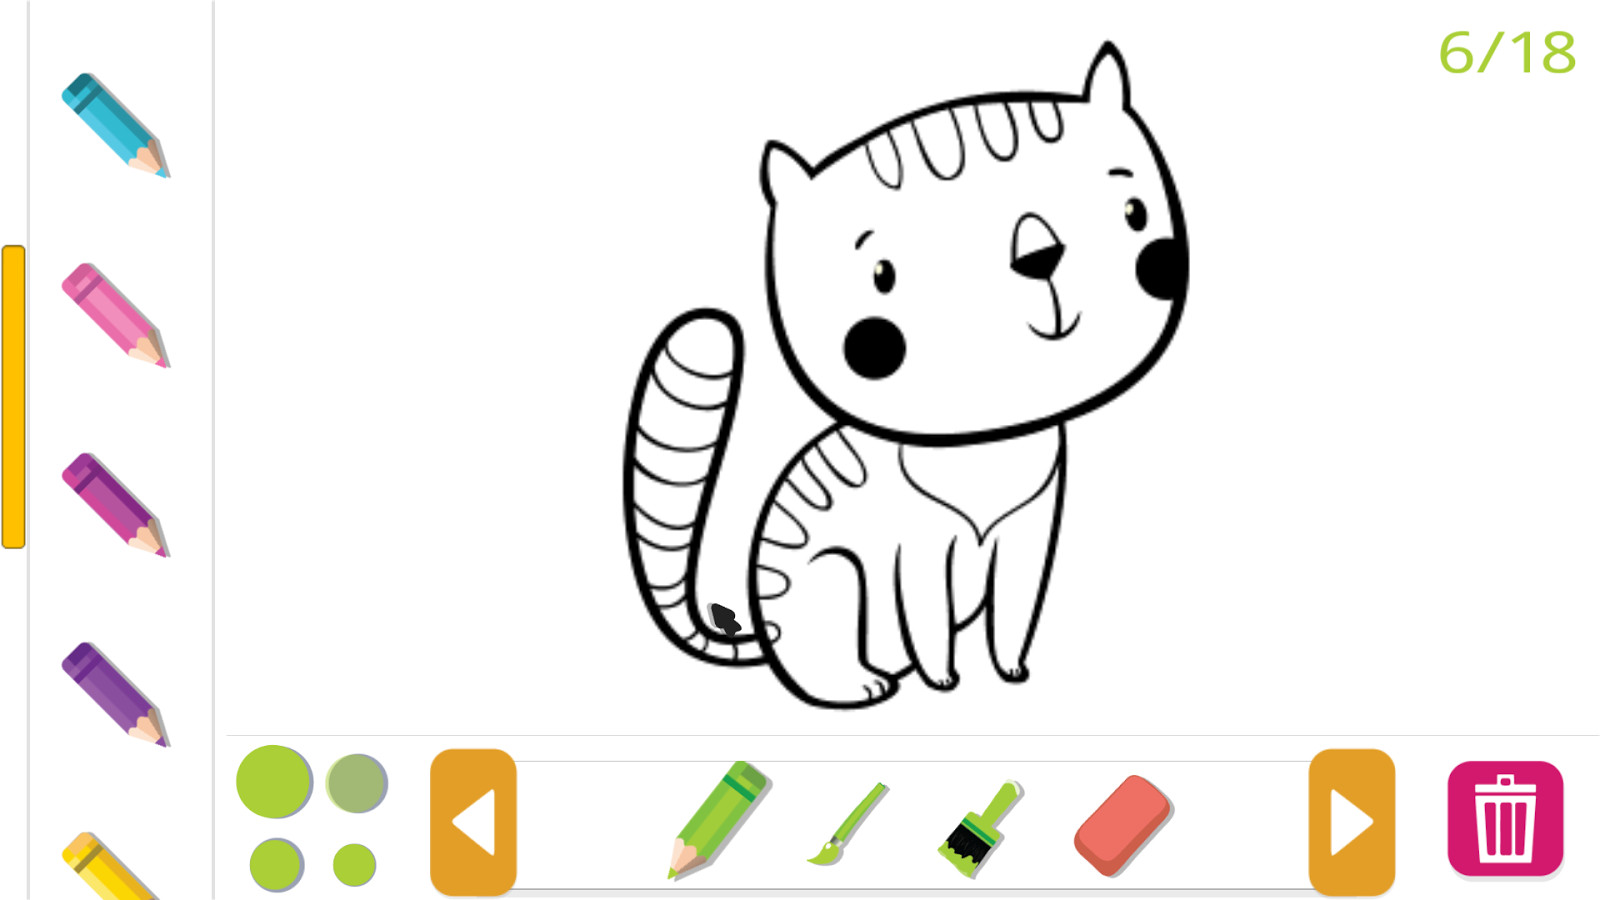 Coloring Apps For Kids  Free Draw for kids Android Apps on Google Play